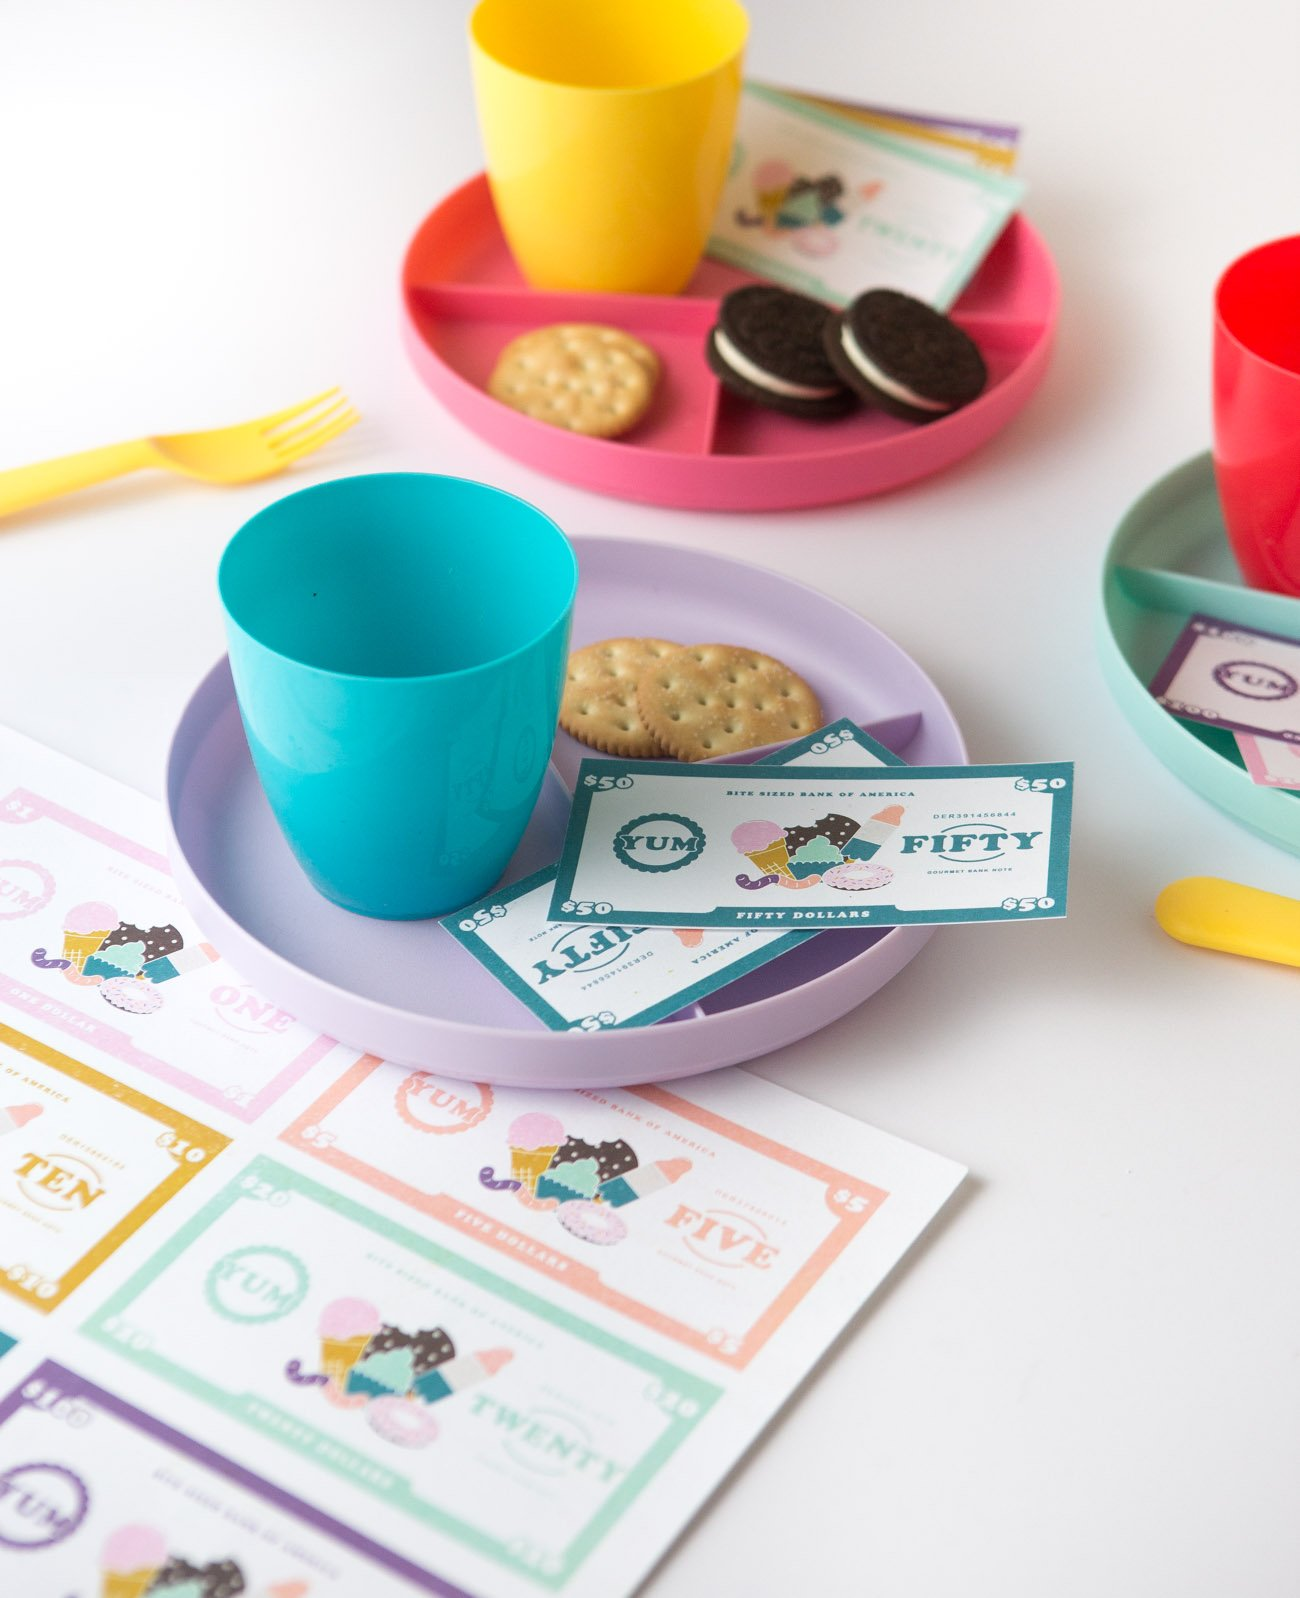 Play restuarant with dessert themed free printable play money for kids, $1, $5, $10, $20, $50, $100